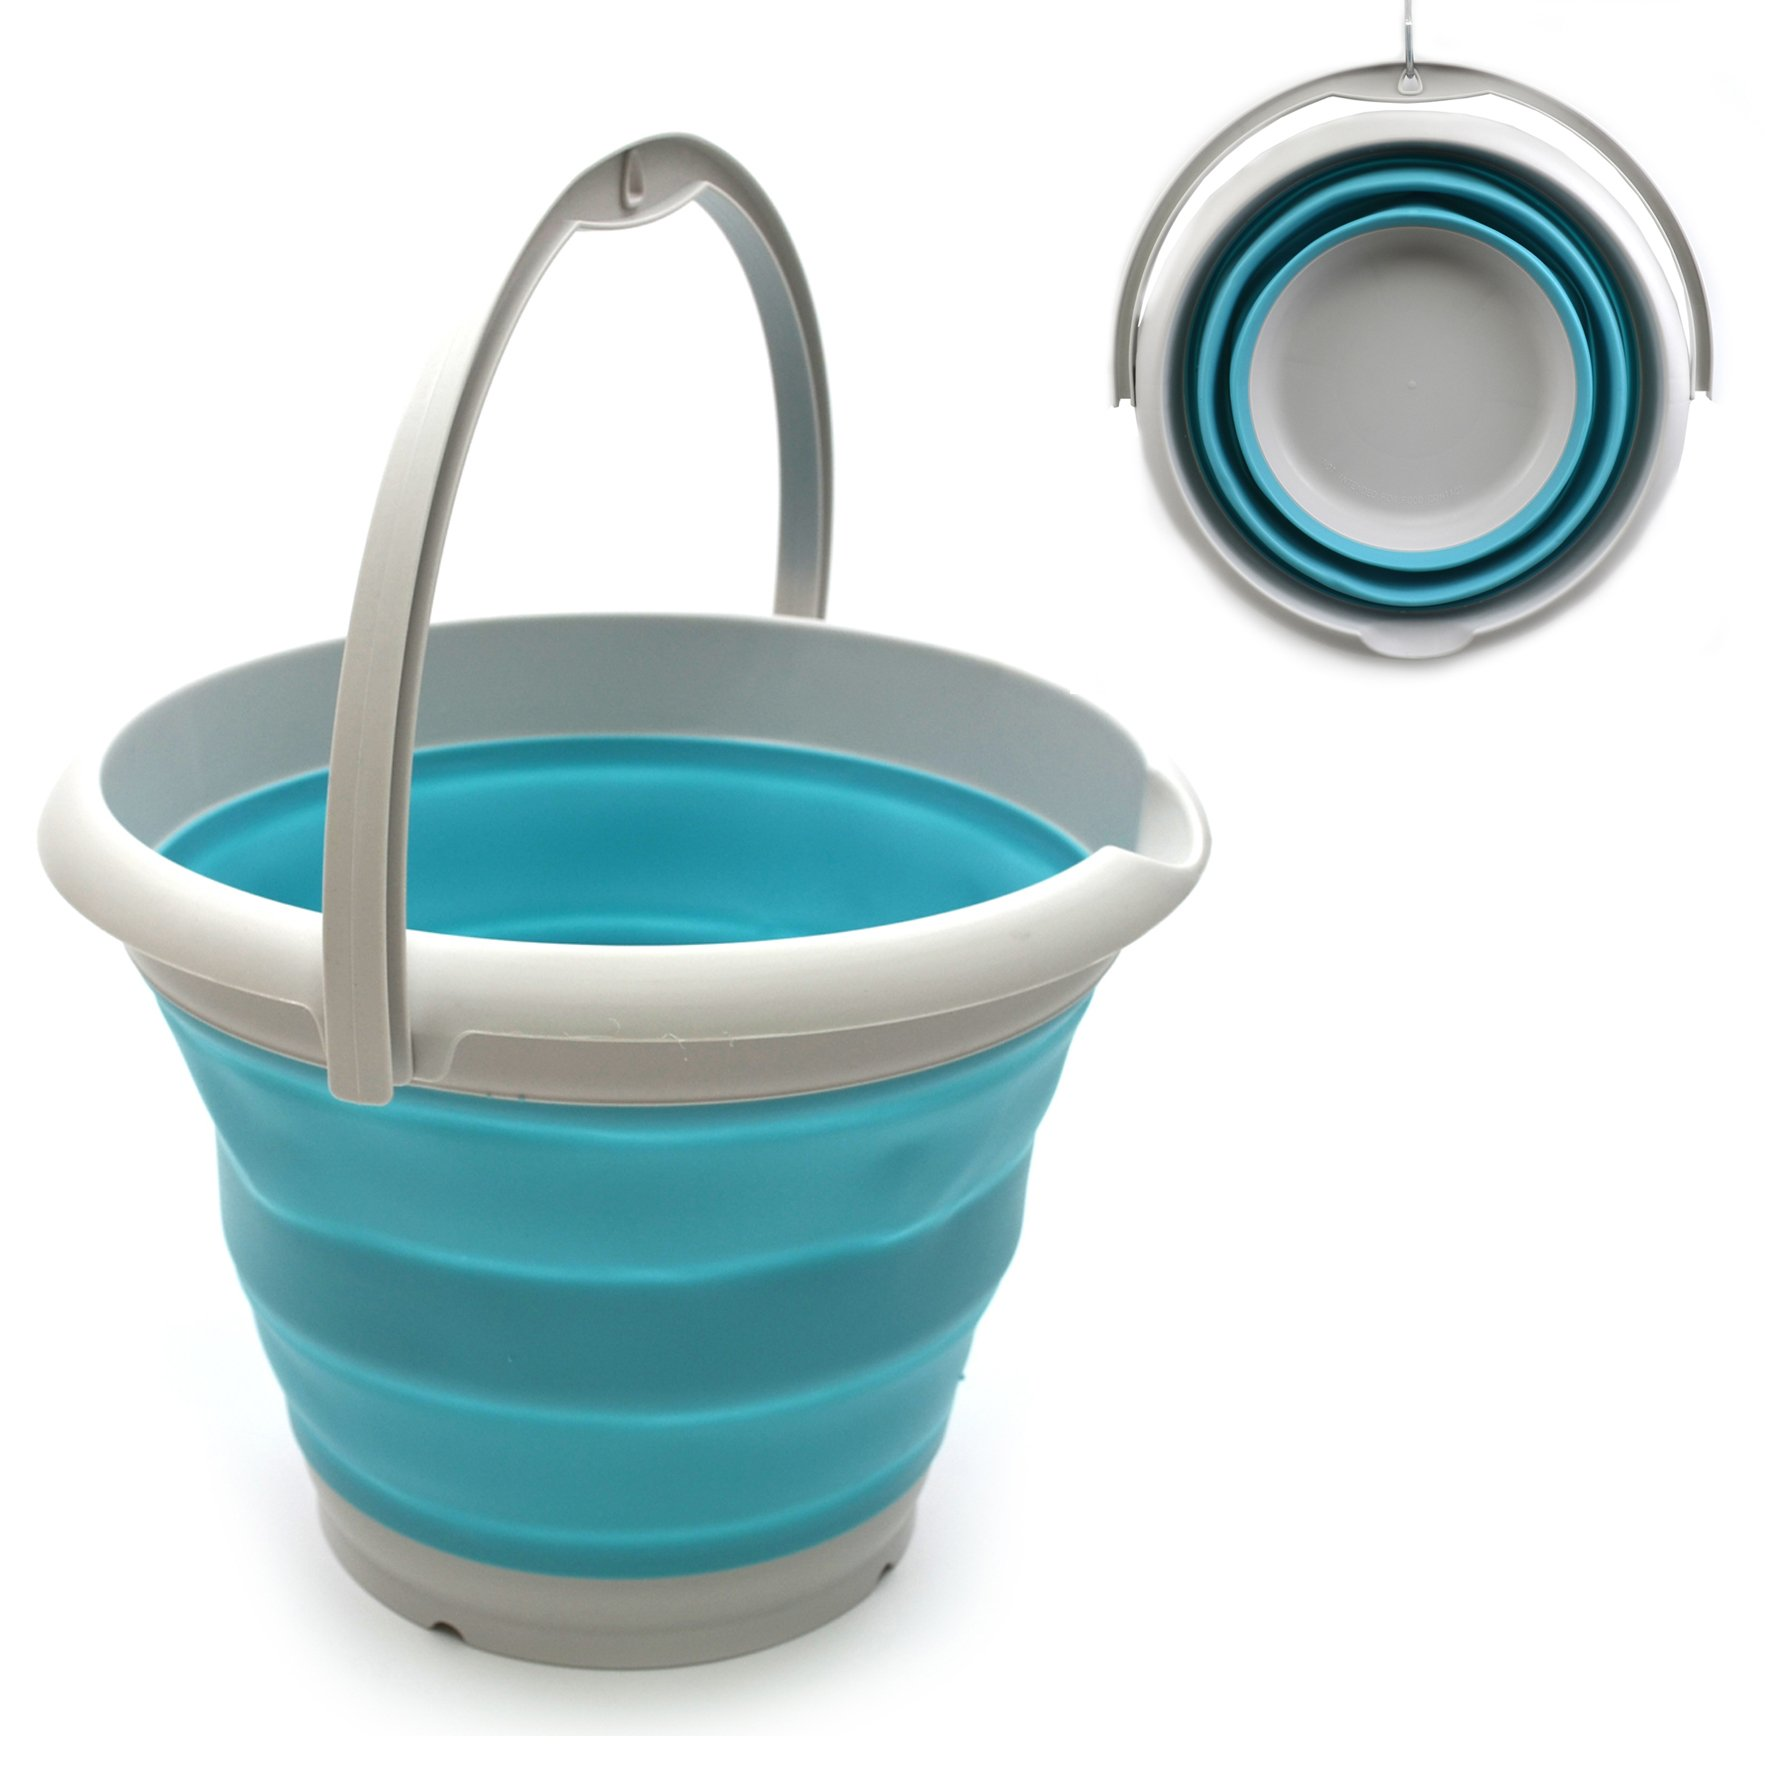 SAMMART 10L (2.6 Gallon) Collapsible Plastic Bucket - Foldable Round Tub - Portable Fishing Water Pail - Space Saving Outdoor Waterpot, size 33cm dia (1, Bright Blue)